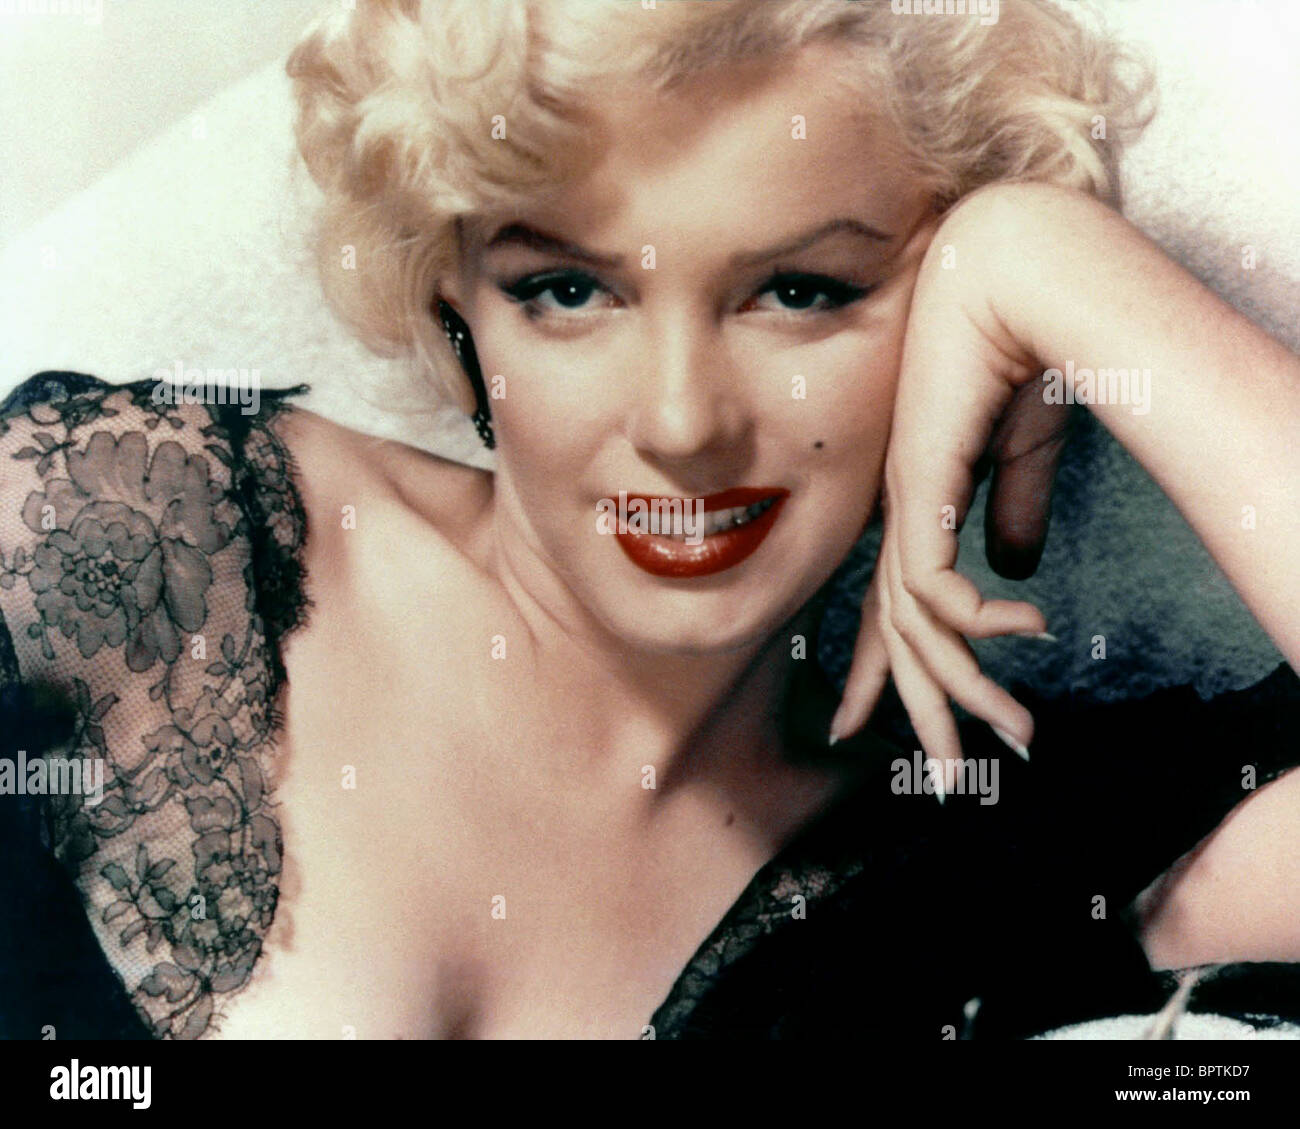 MARILYN MONROE ATTRICE (1957) Foto Stock